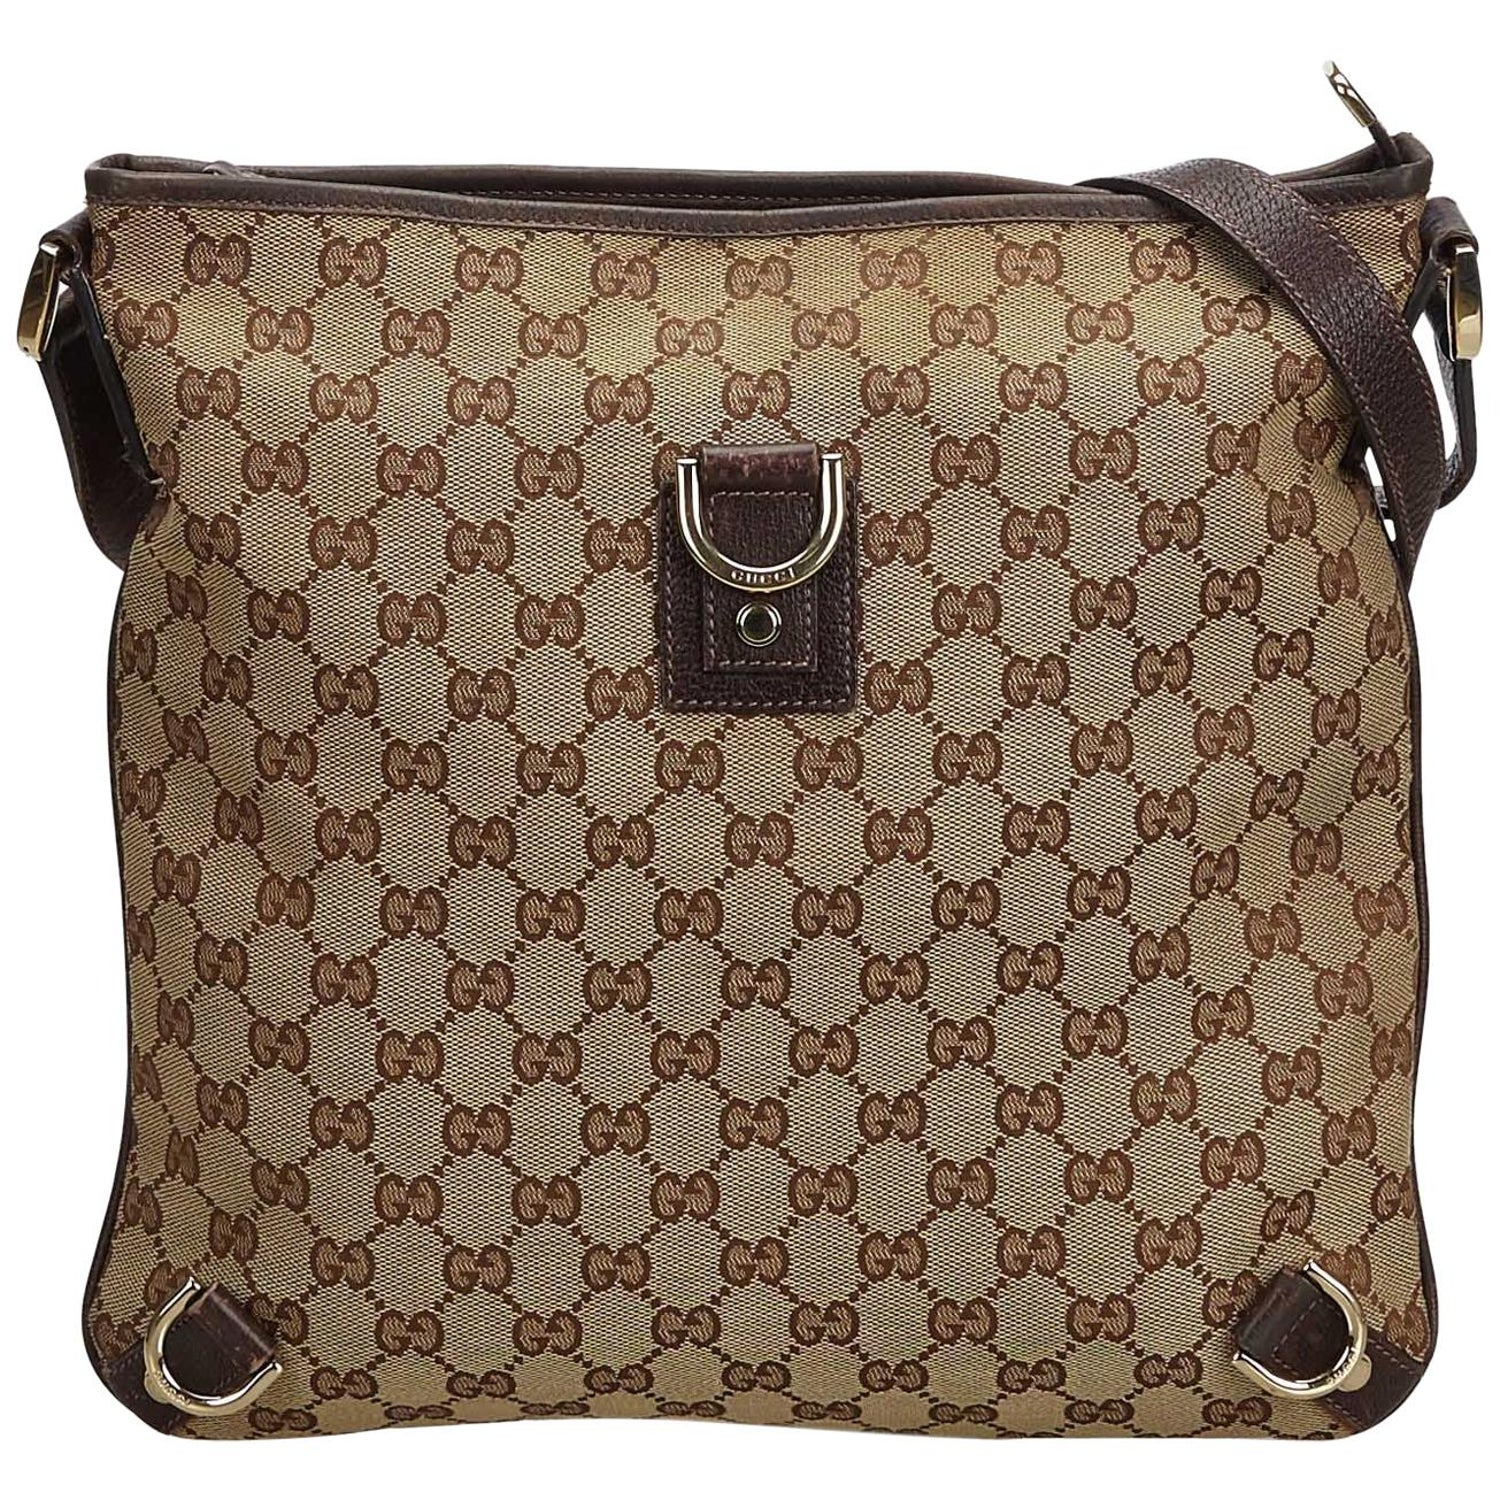 ce31c6da8 Vintage Authentic Gucci Brown GG Abbey Crossbody Bag Italy w Dust Bag  MEDIUM For Sale at 1stdibs